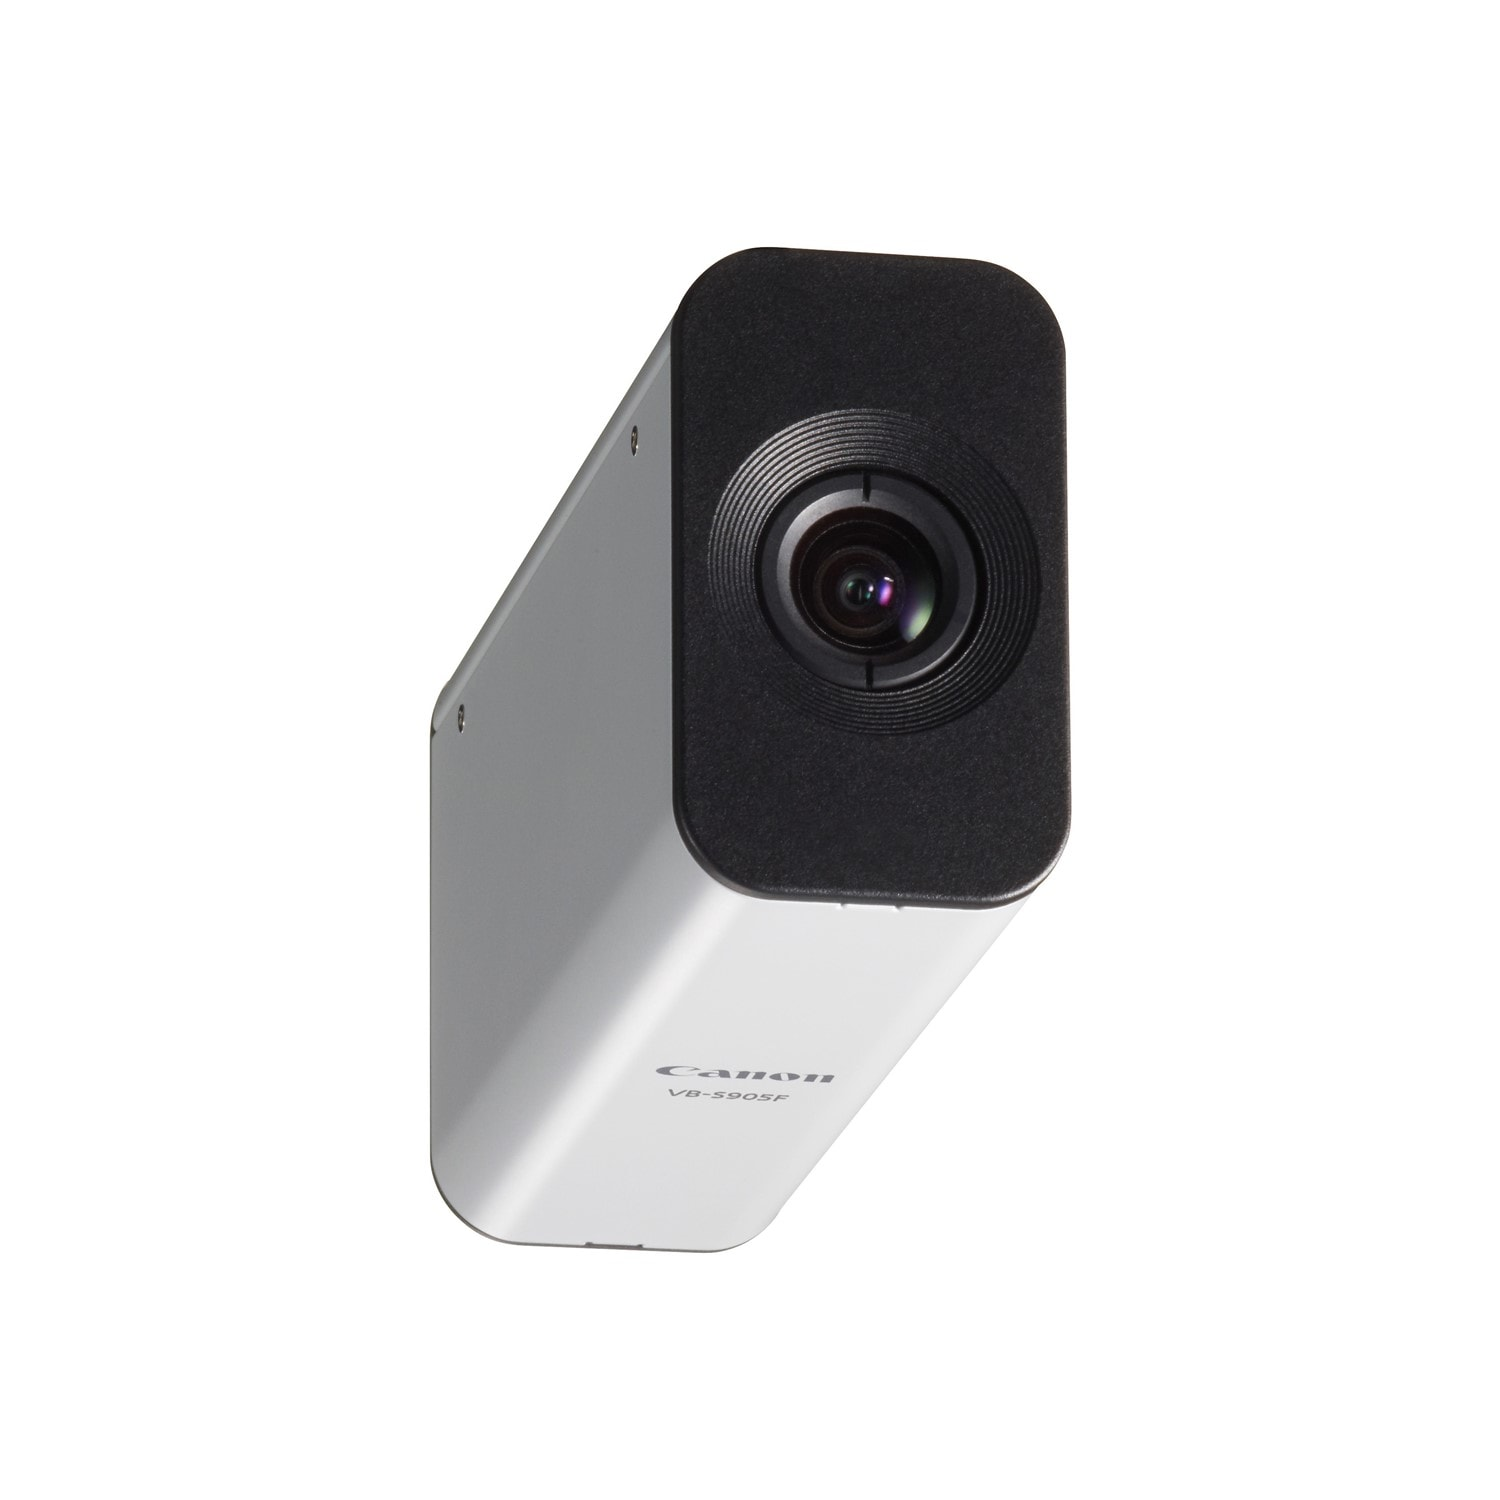 Canon VB-S905F Network Camera Mac